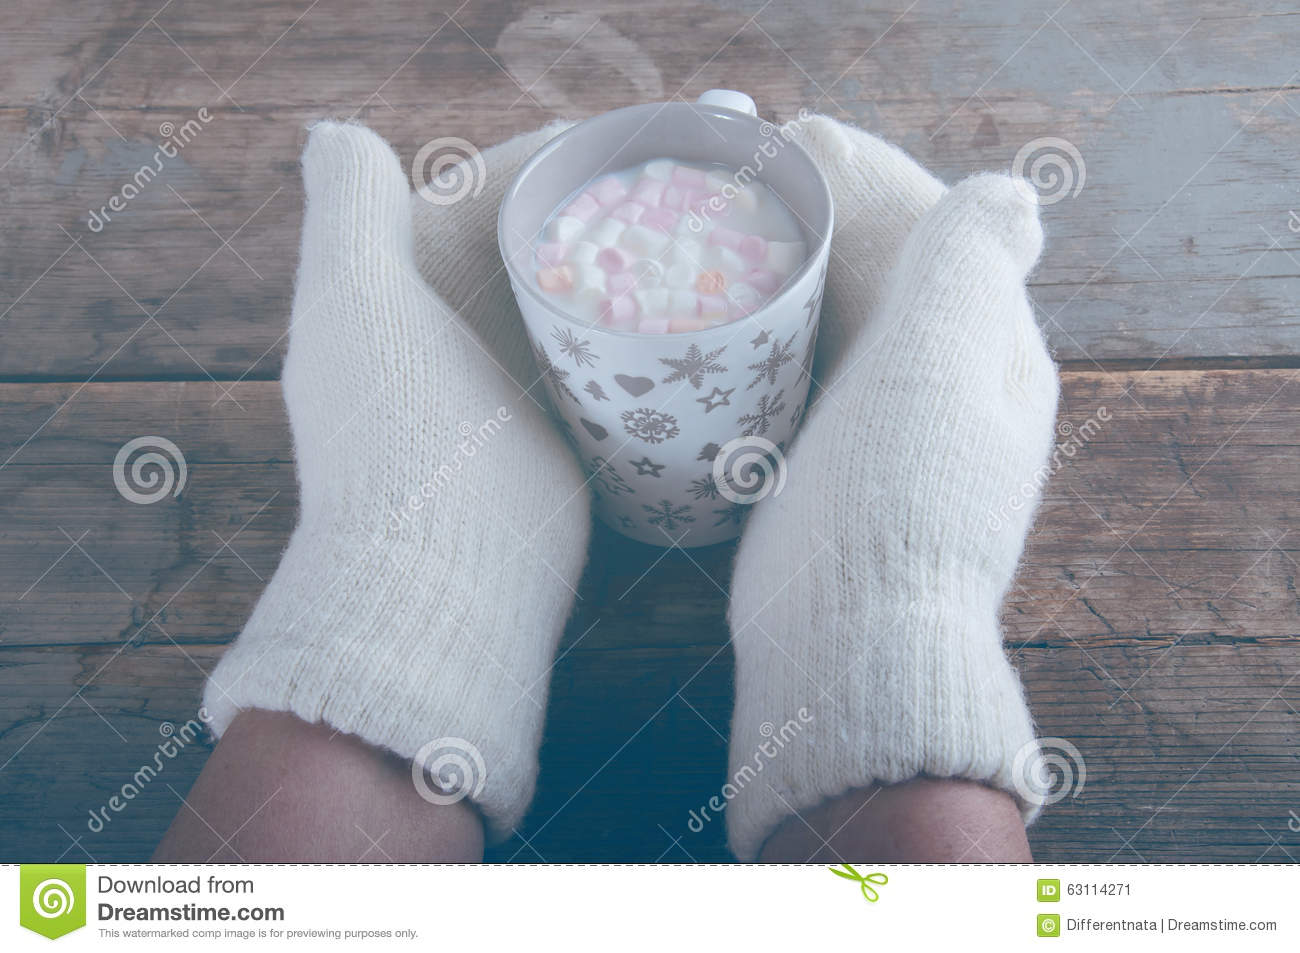 Knitting Pattern For Hand Holding Mittens : Hands In White Mittens Holding Cup Of Hot Milk Stock Photo - Image: 63114271